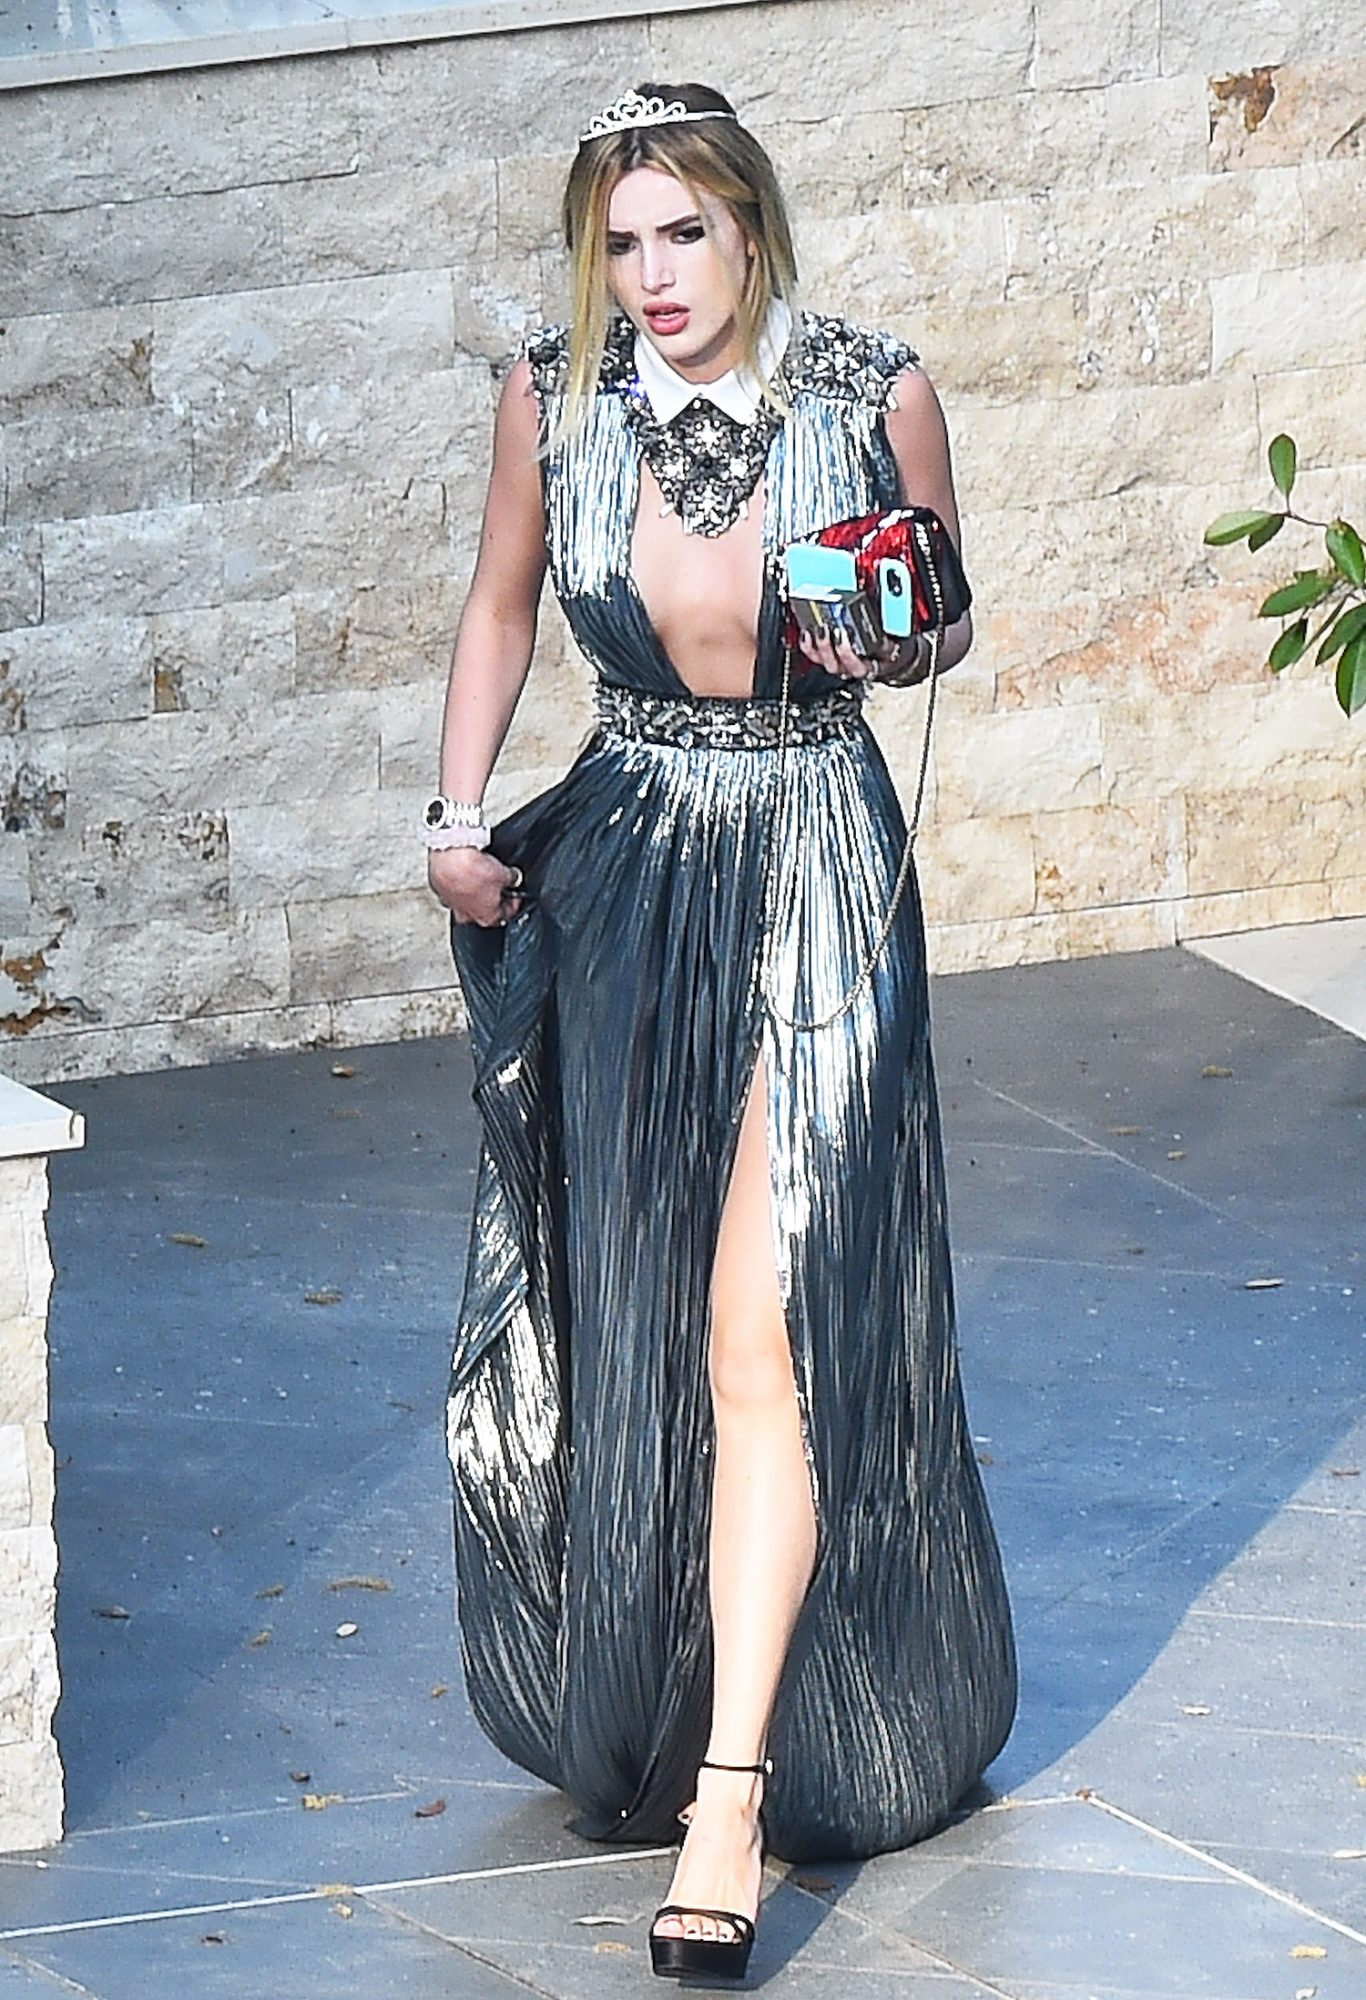 EXCLUSIVE: Bella Thorne is seen leaving her Luxury Villa dressed to impress as she goes to an event in Cannes